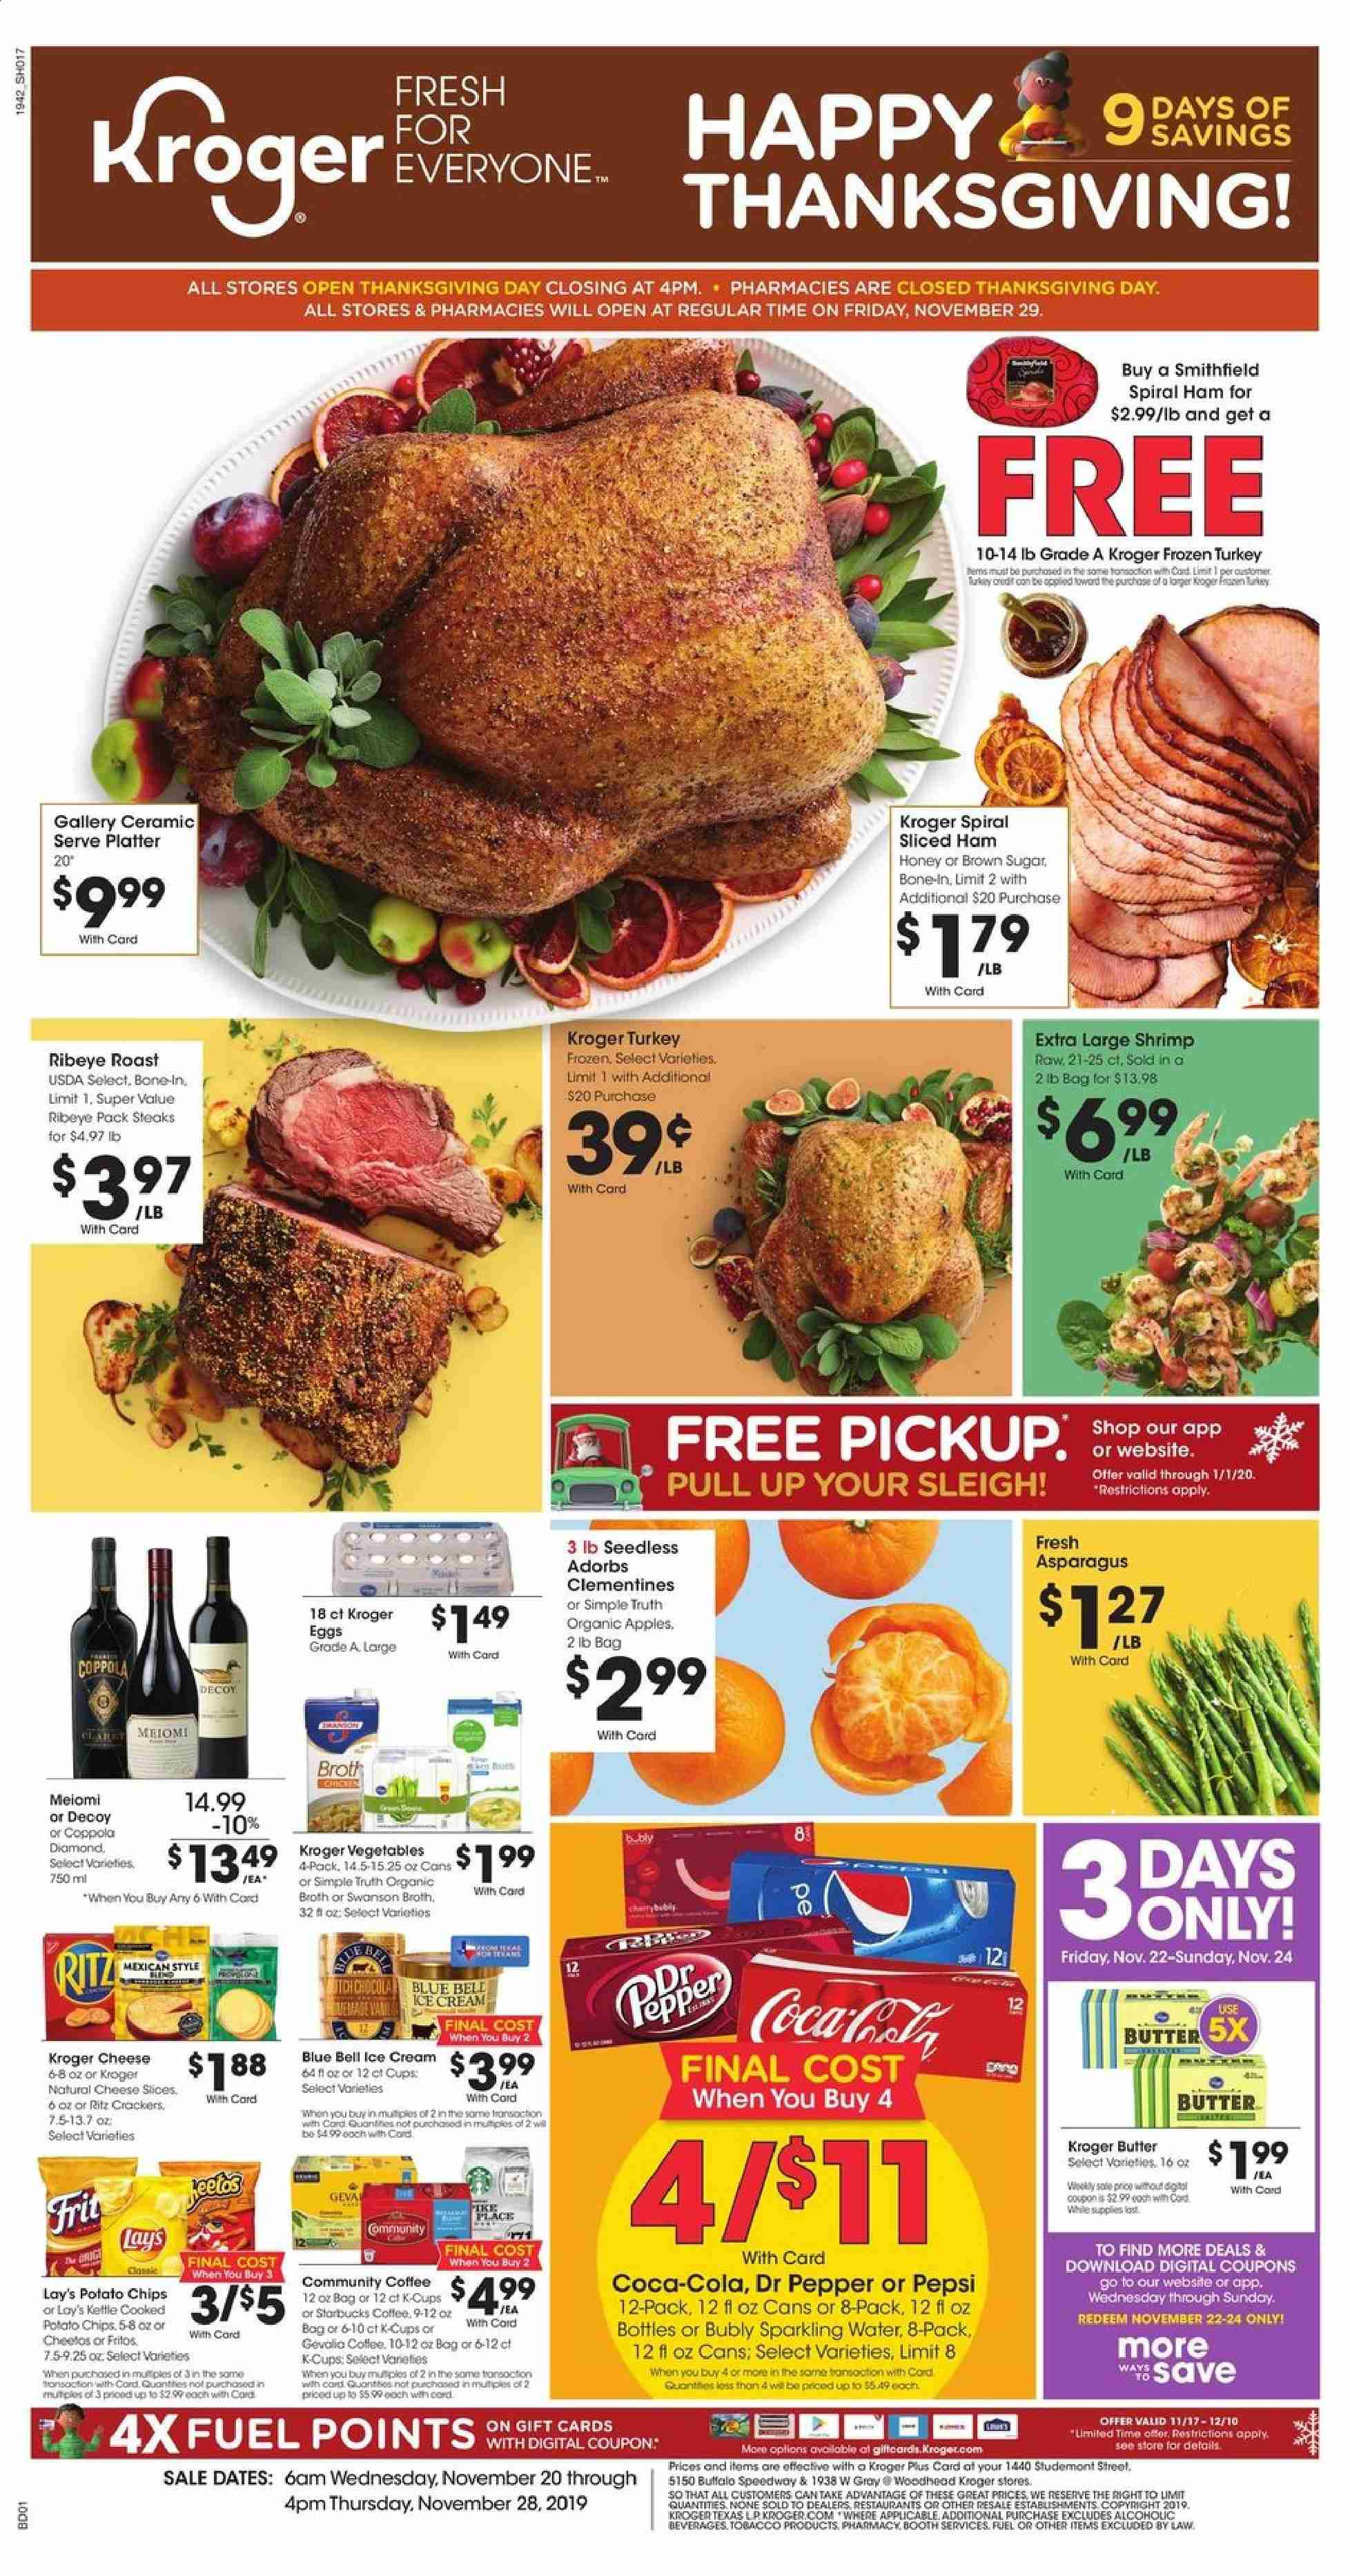 Kroger Flyer - 11.20.2019 - 11.28.2019 - Sales products - apples, asparagus, brown sugar, butter, clementines, coca-cola, coffee, crackers, dates, eggs, fritos, frozen turkey, fuel, shrimp, sole, starbucks, sugar, turkey, ham, honey, ice cream, pike, potato chips, cheese slices, cheetos, chicken, pepsi, organic, chips, cheese, vegetables, pepper, sparkling water, lay's, ritz, platter, spiral ham, dr. pepper, roast, cream. Page 1.